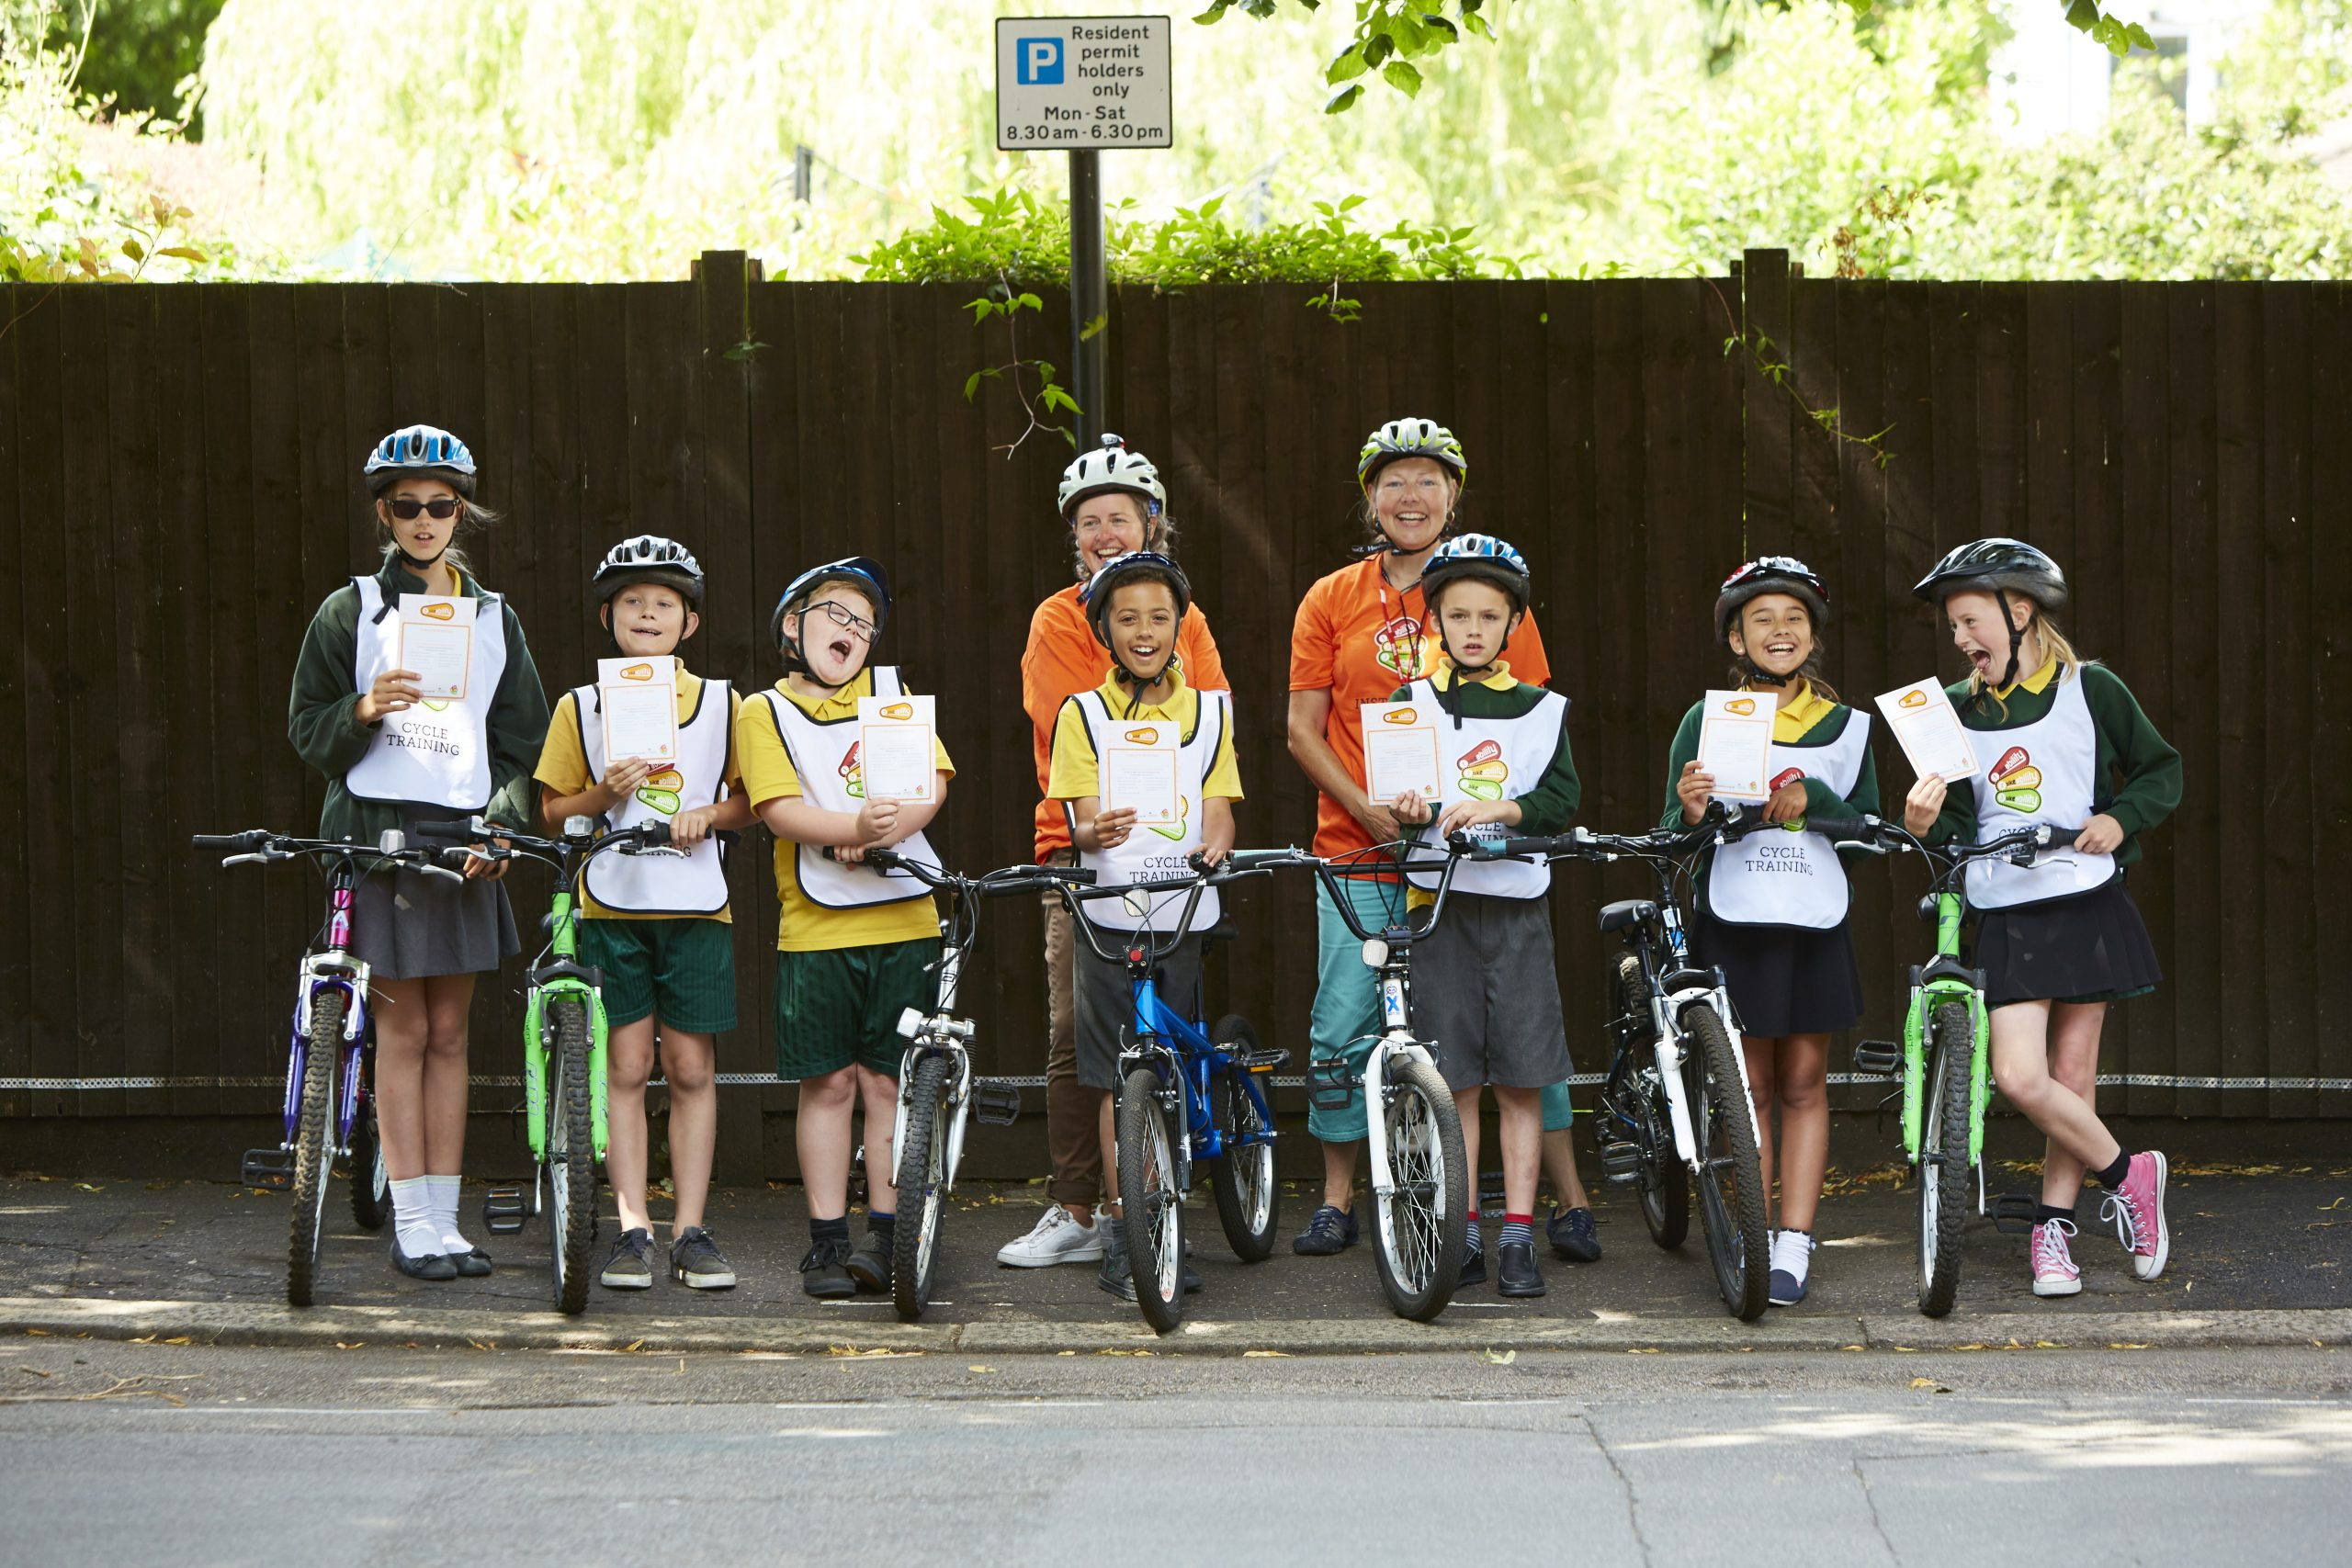 Southend school with Bikeability certificates